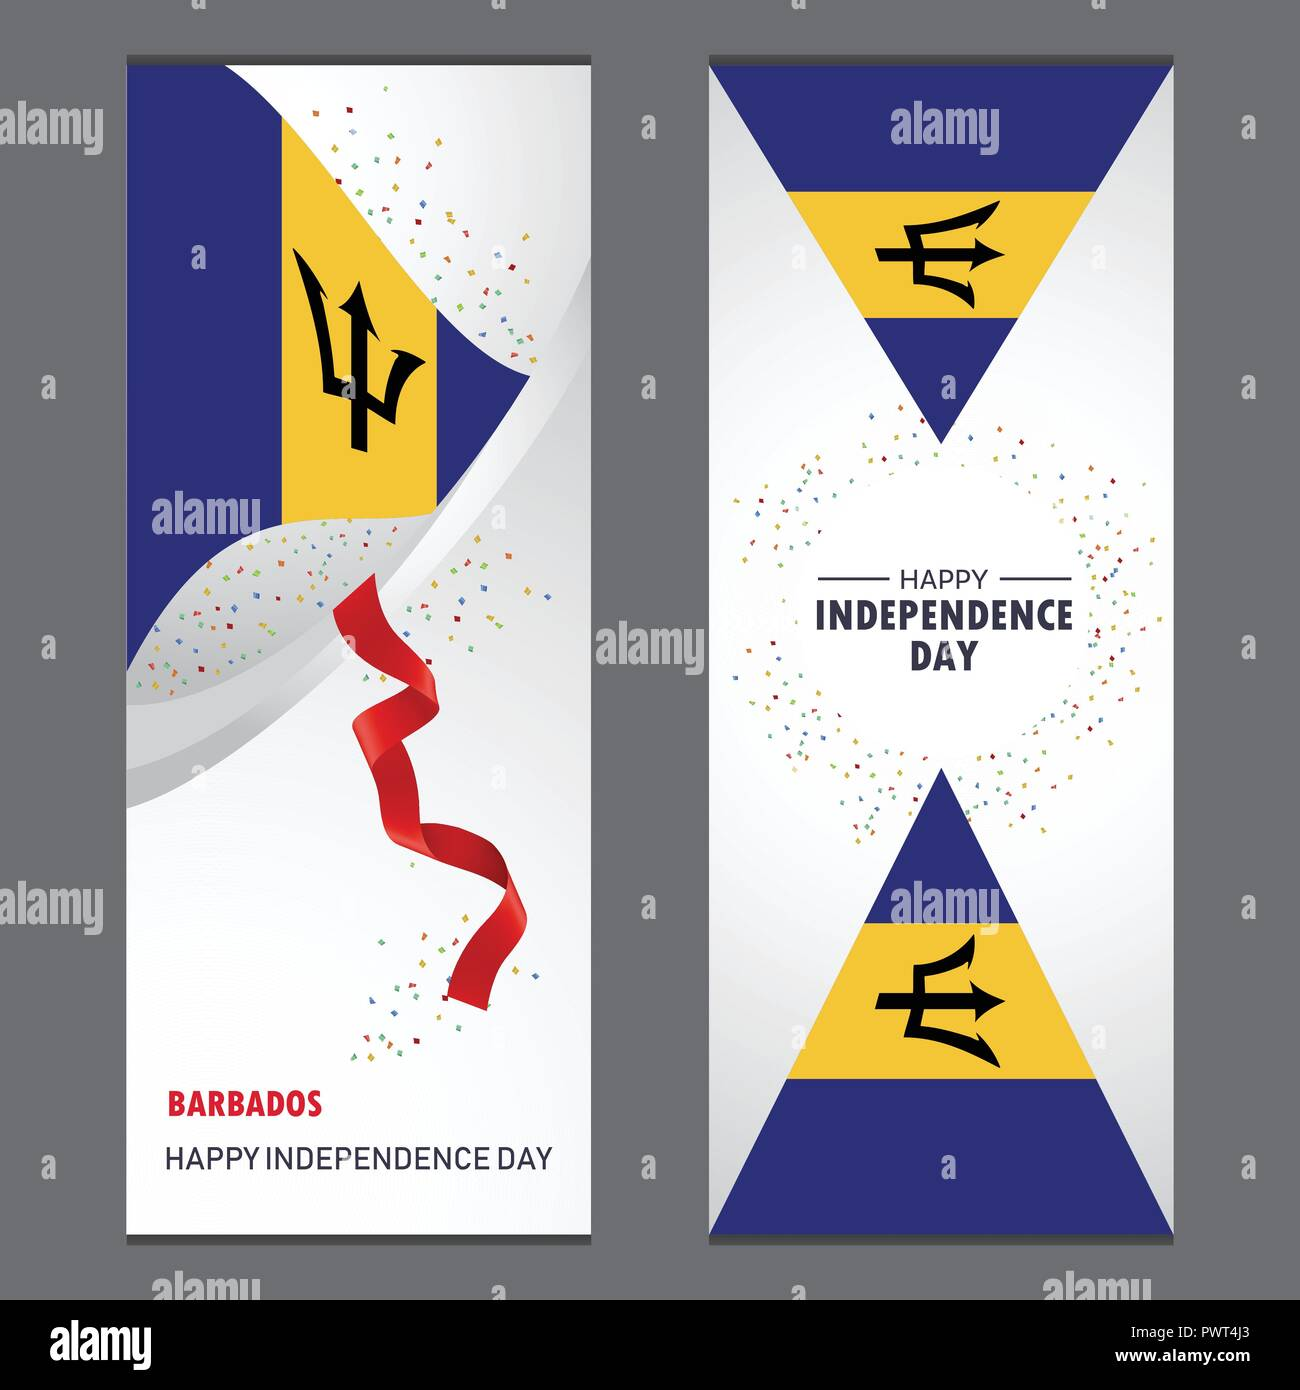 Barbados Happy independence day Confetti Celebration Background Vertical Banner set - Stock Vector